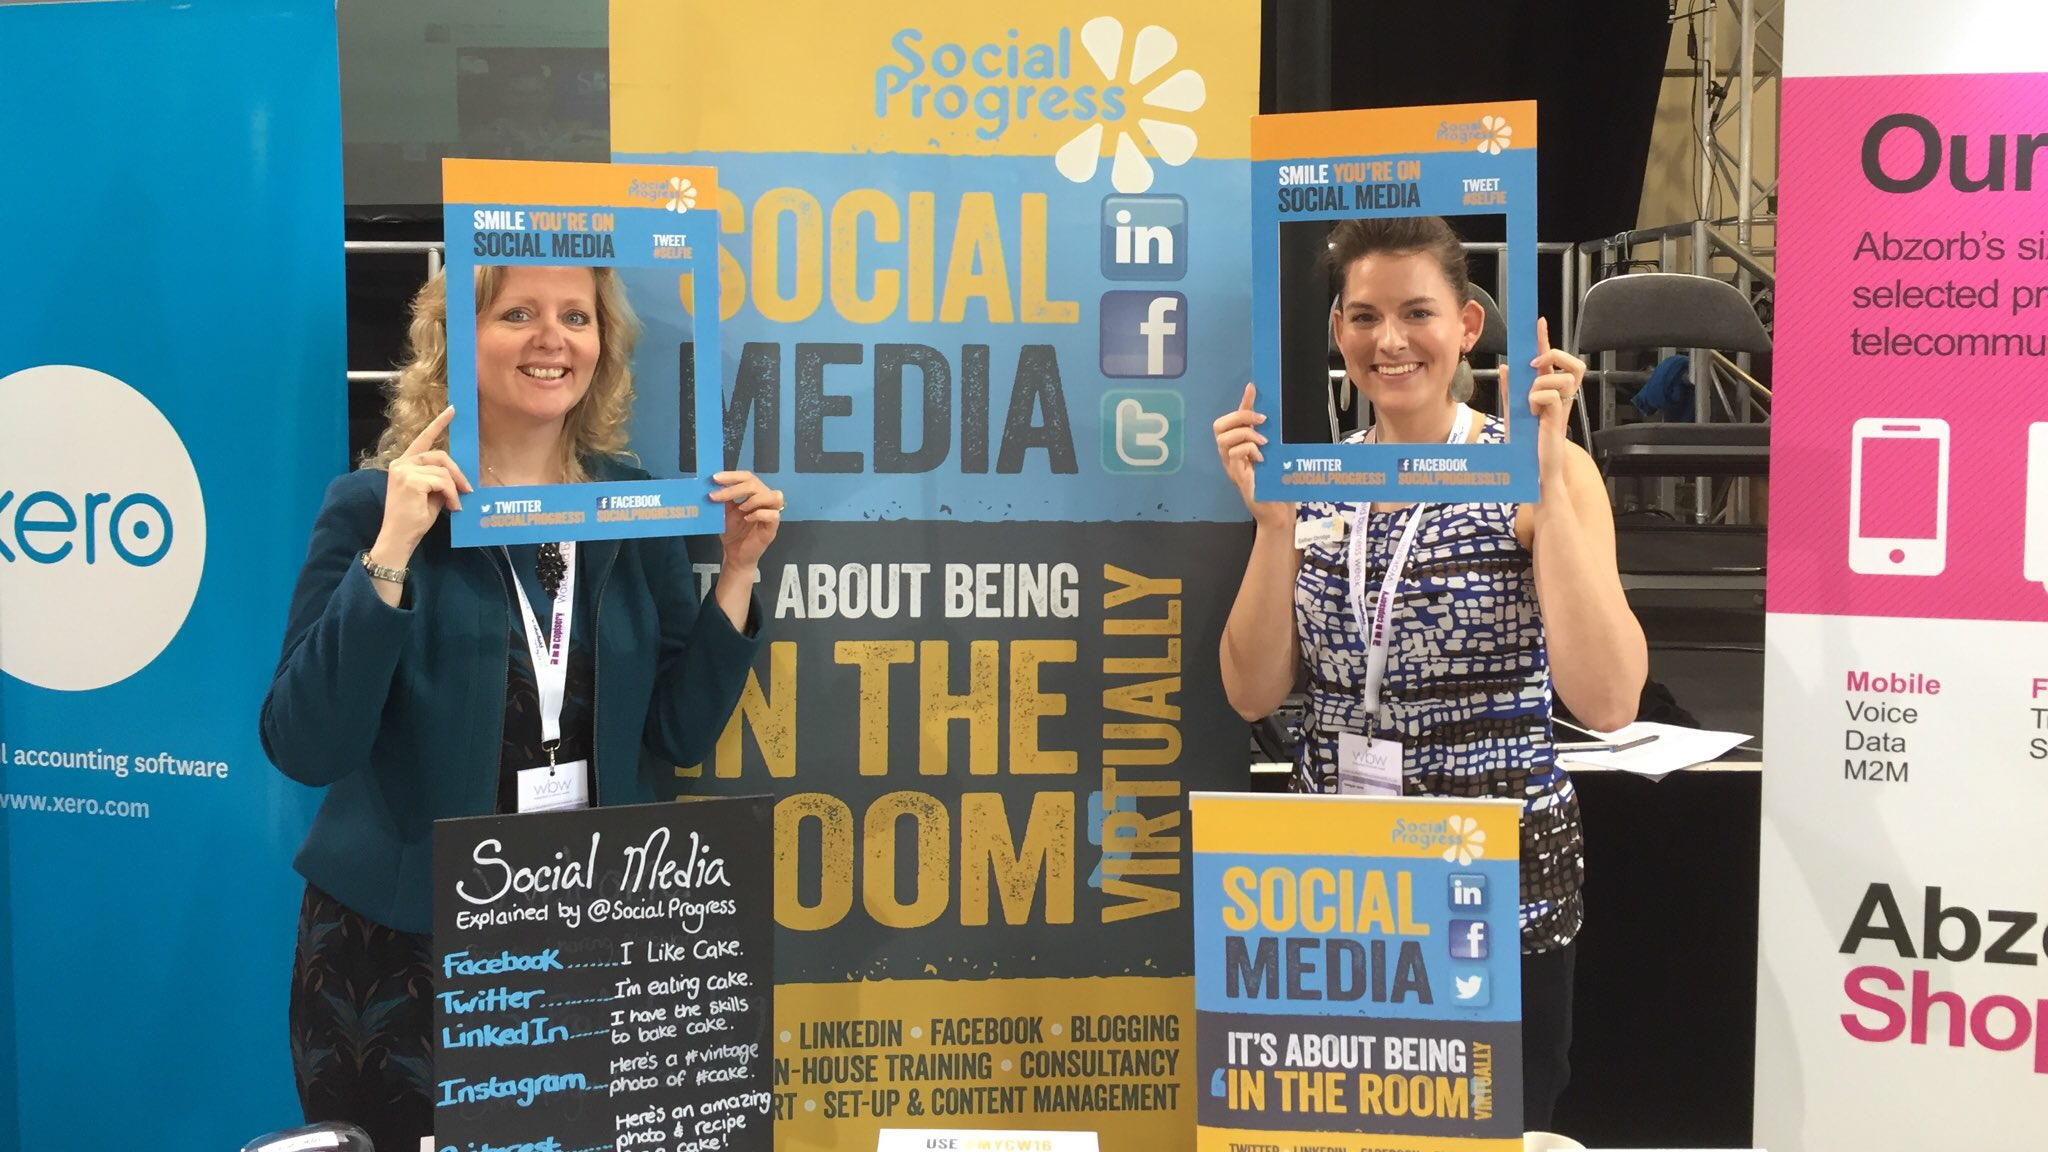 Social Progress Ltd - Wakefield Business Conference 2016 - Twitter Wall and Social Media